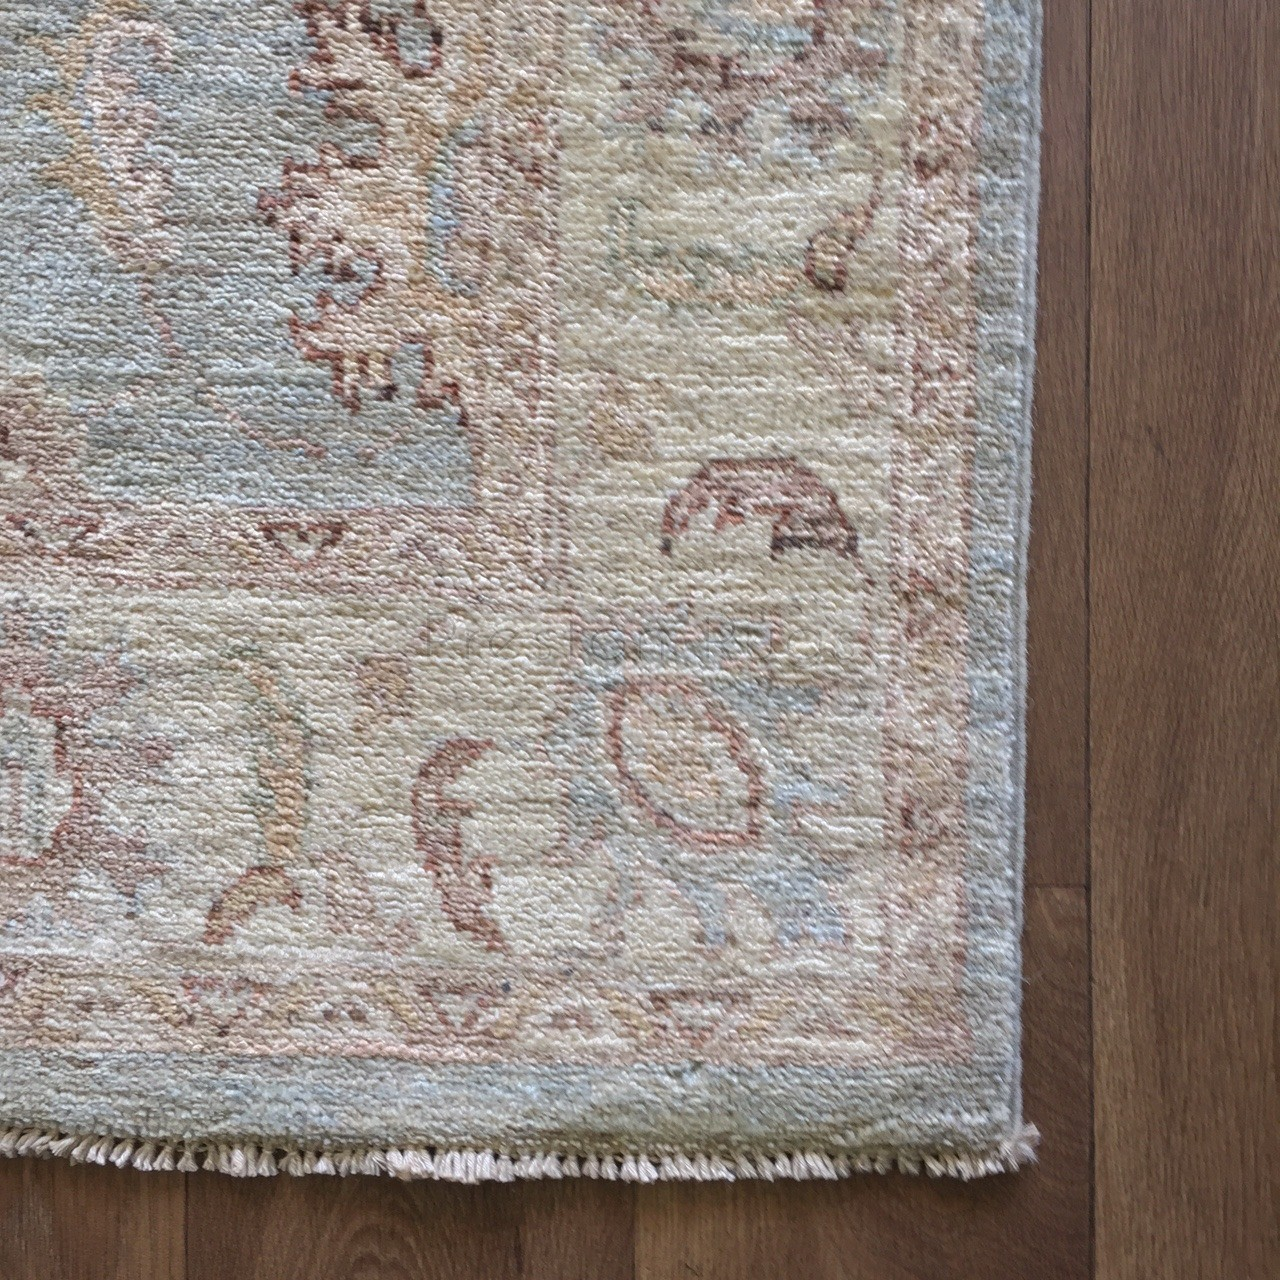 Afghan Ziegler Hand Knotted Traditional Wool Rug Green